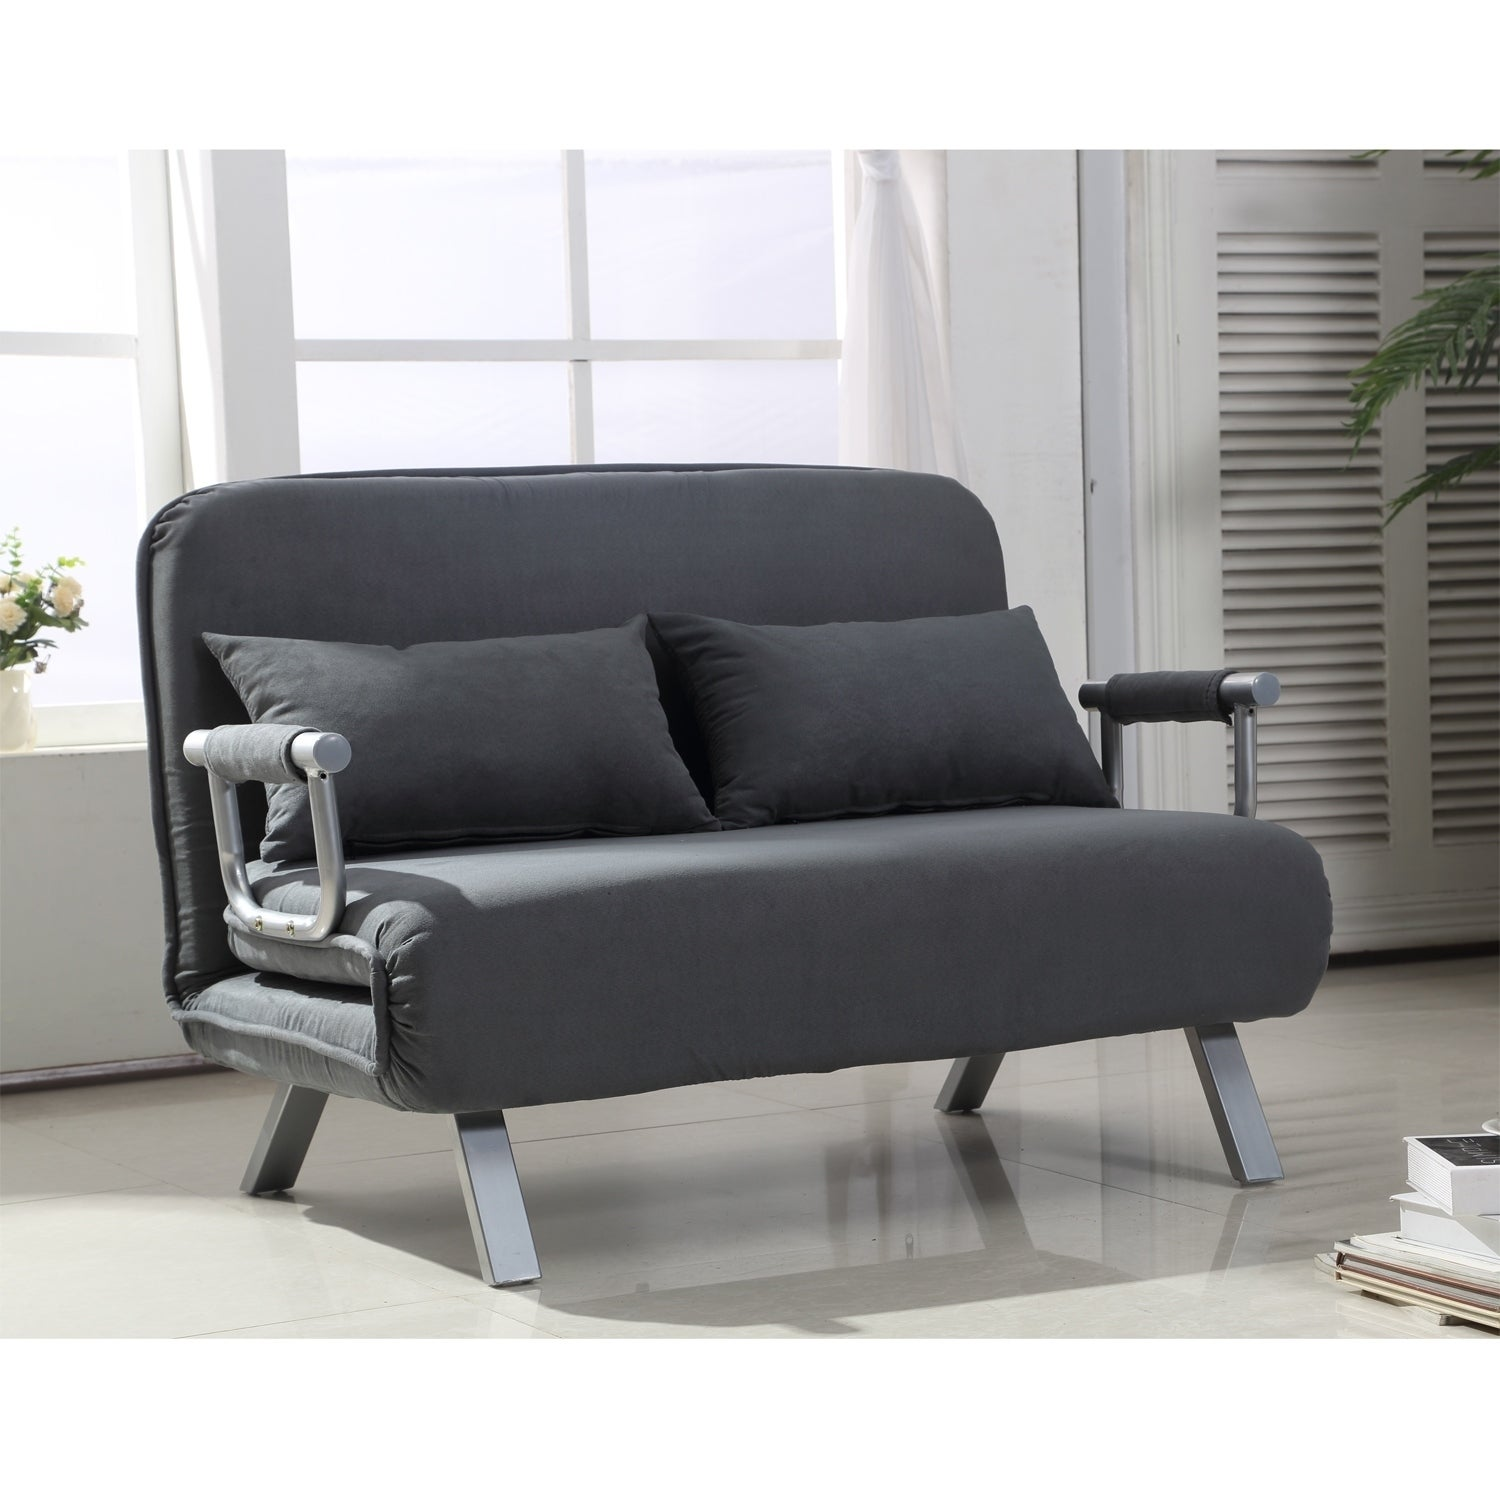 11-Seater Sofa Chair 11 Position Convertible Sleeper Bed